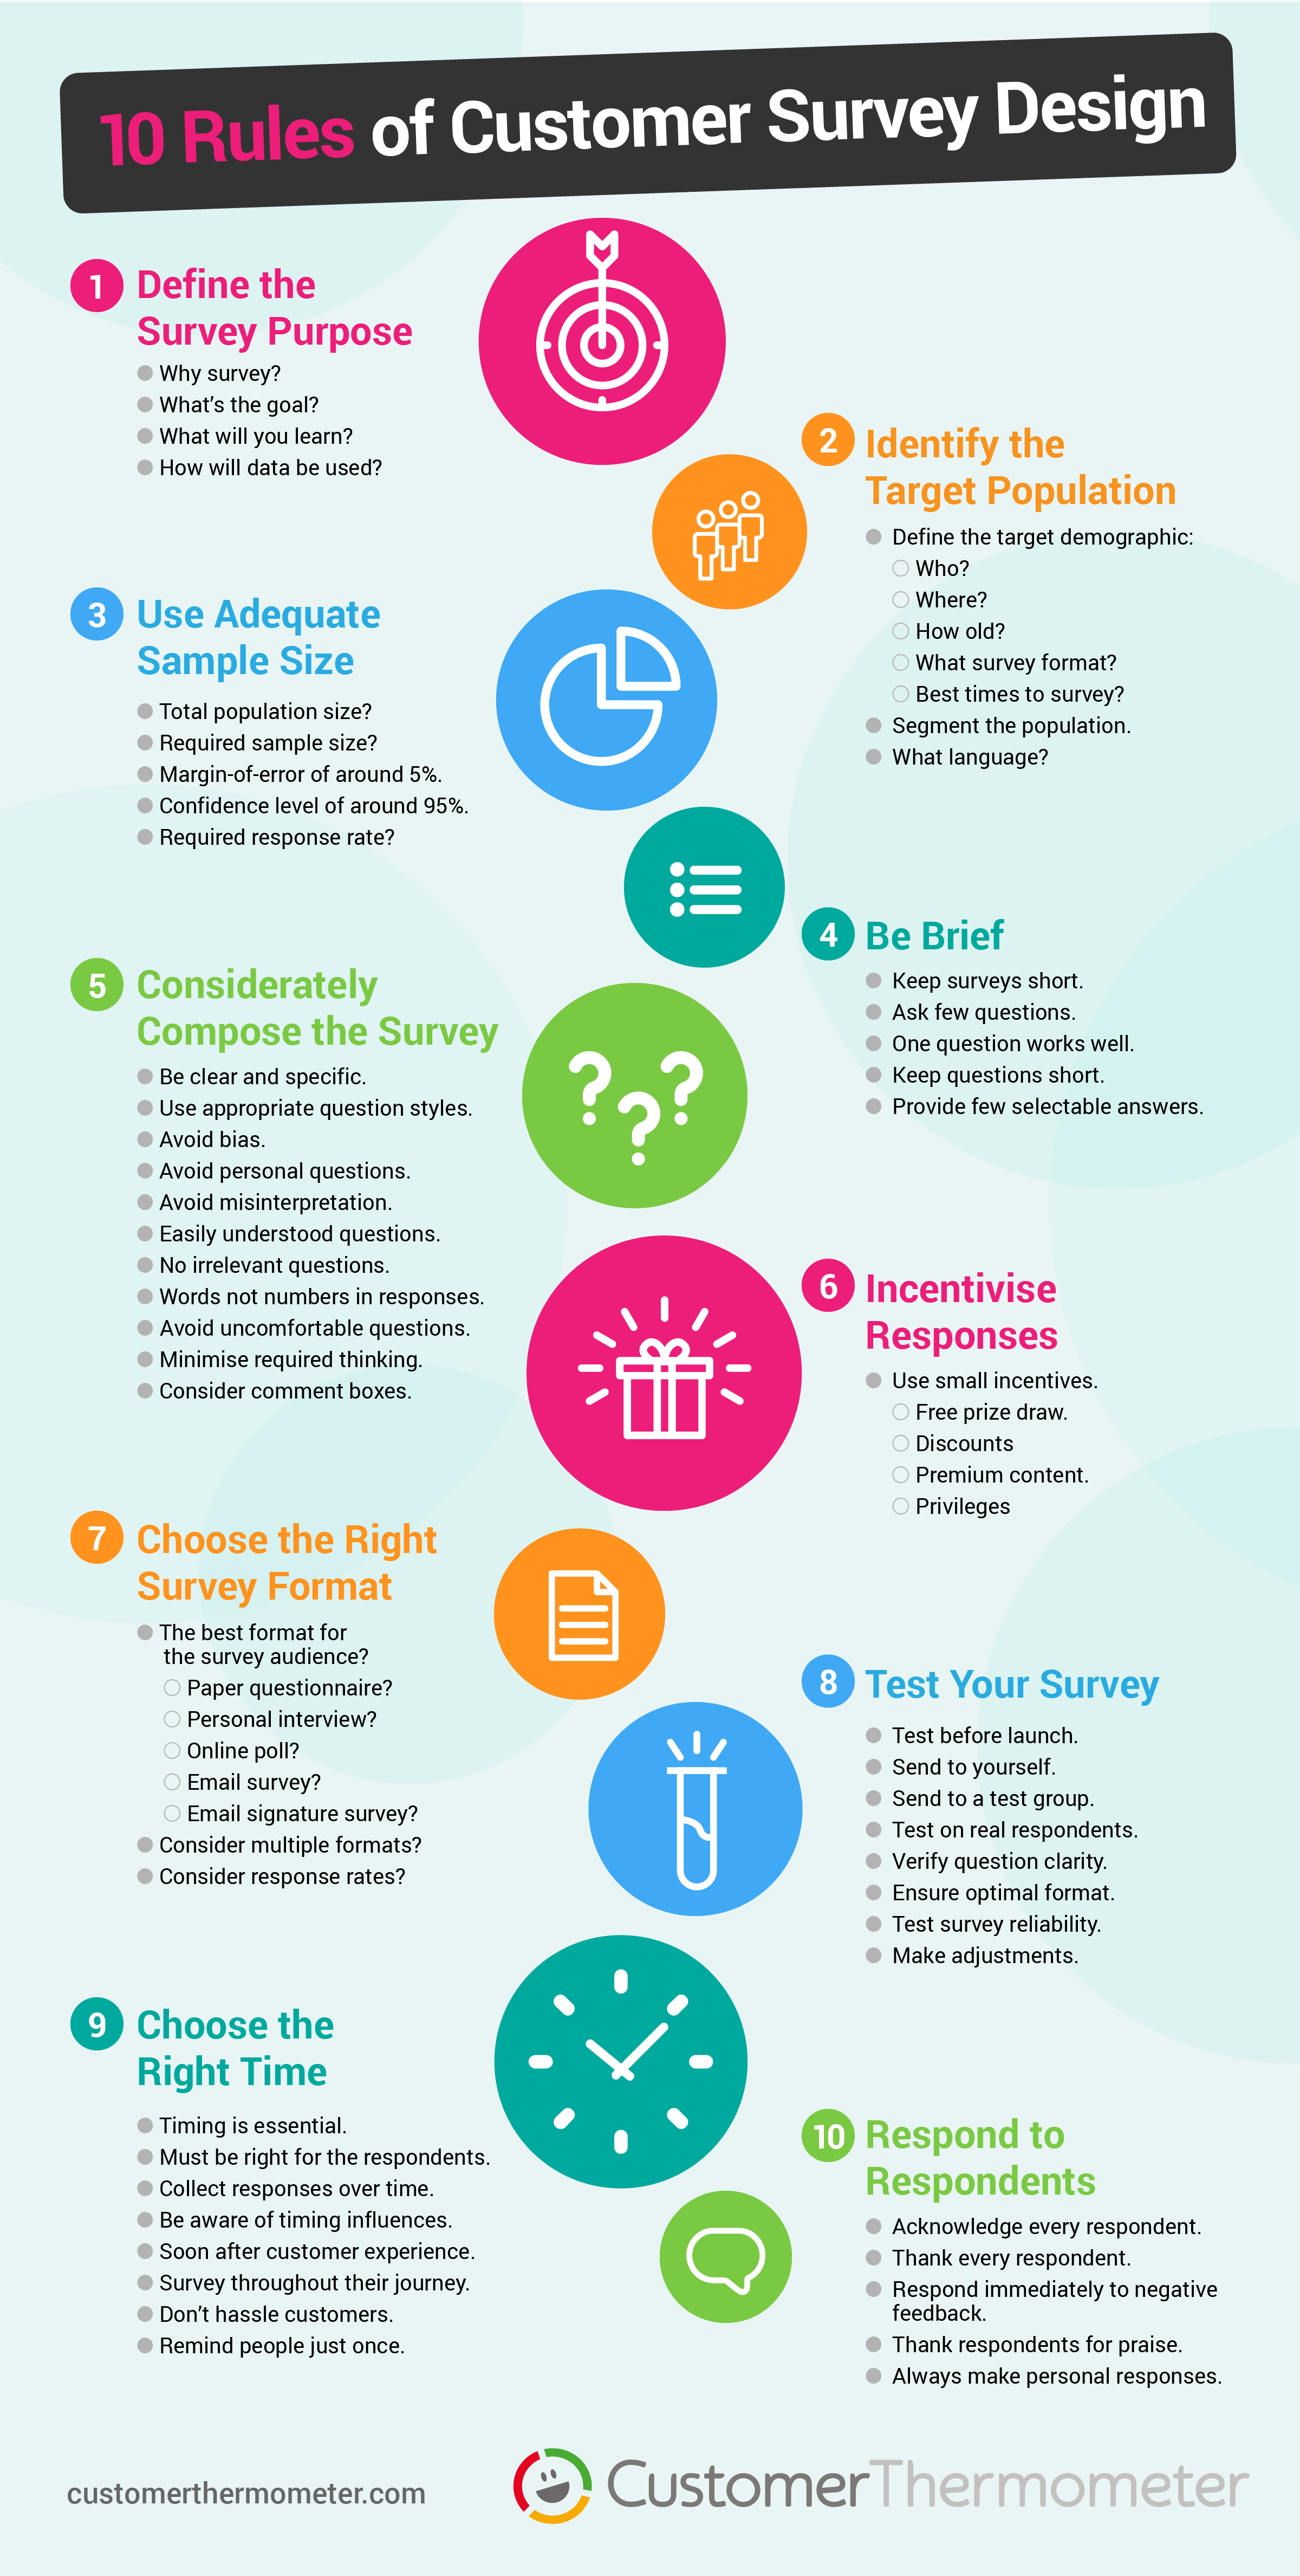 10 Rules of Customer Survey Design Infographic